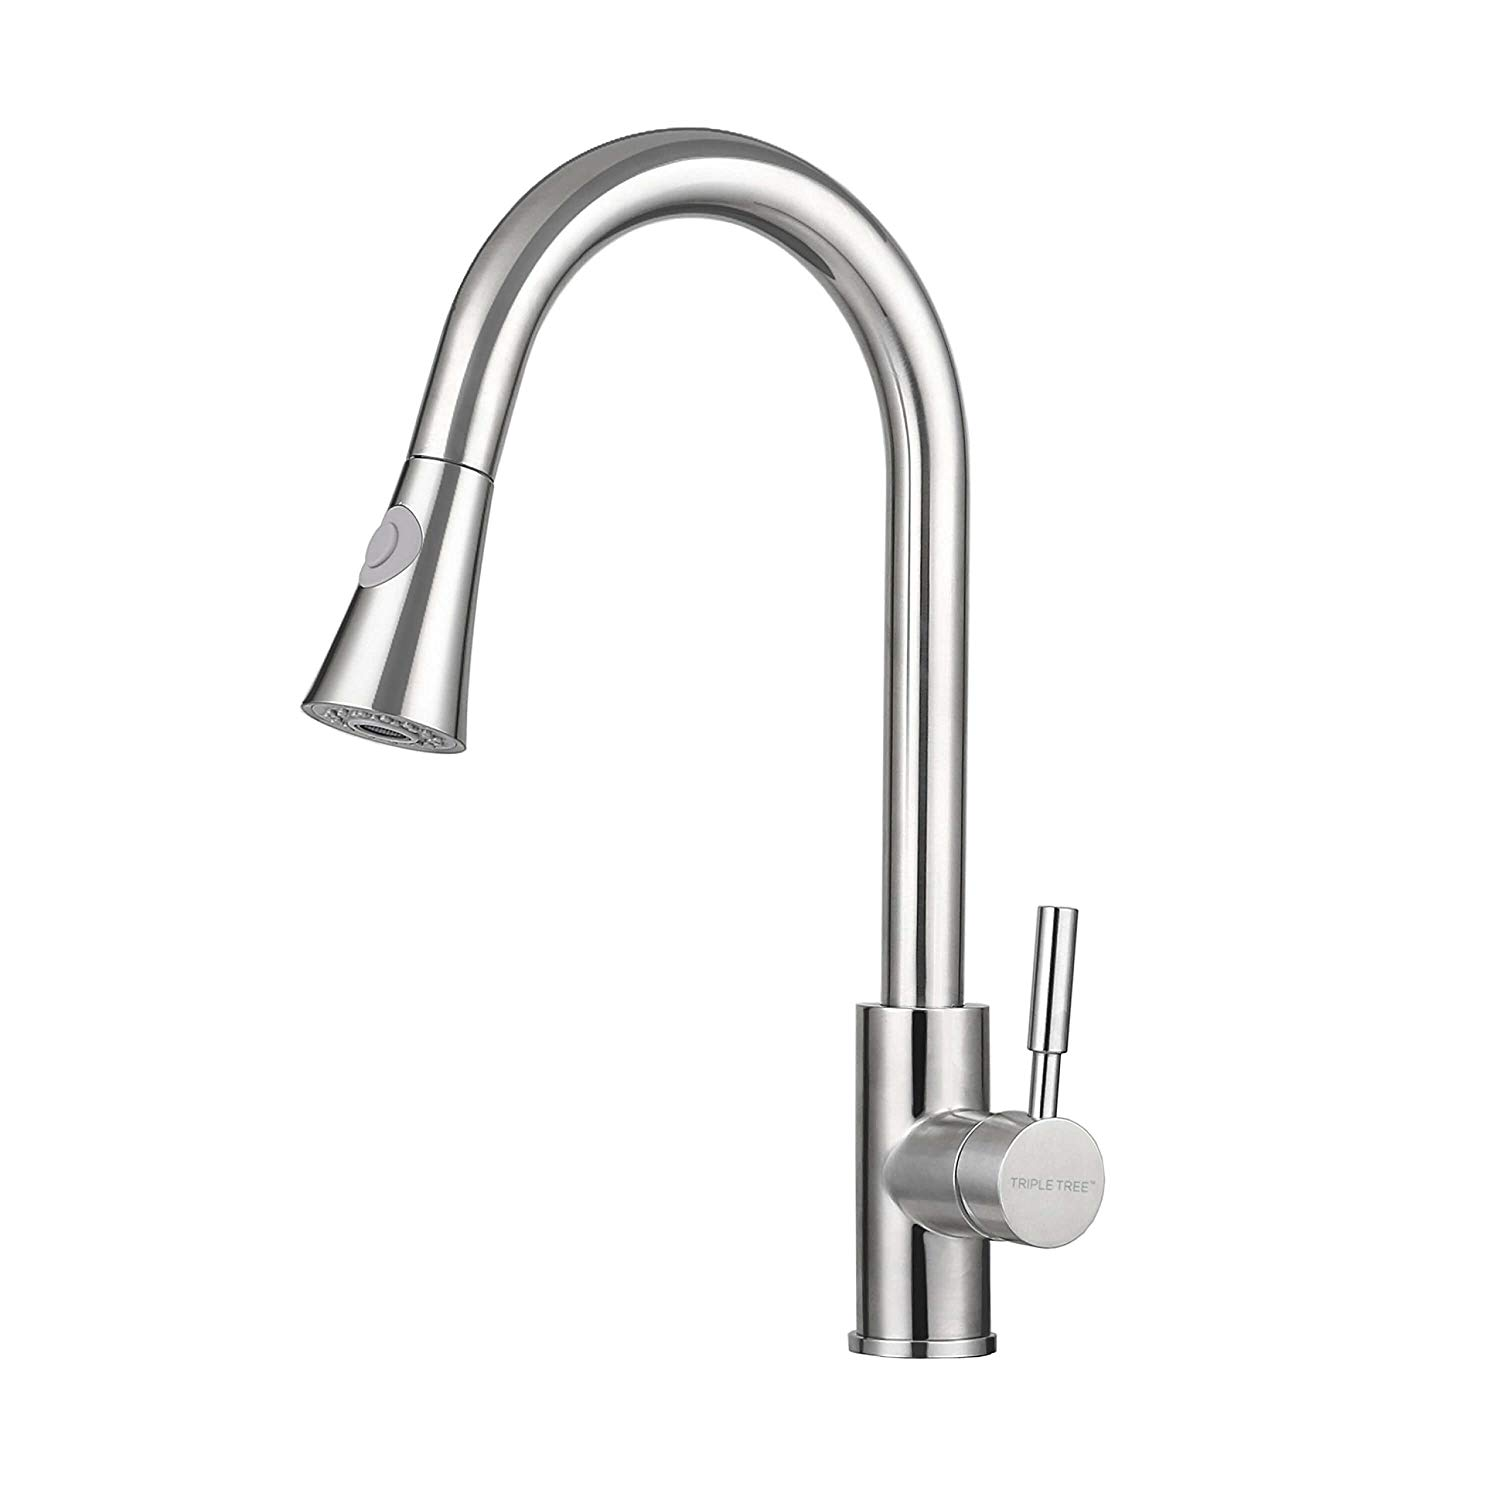 Monobloc Tap -Faucet Sprayer-Spring 360 Swivel Spout